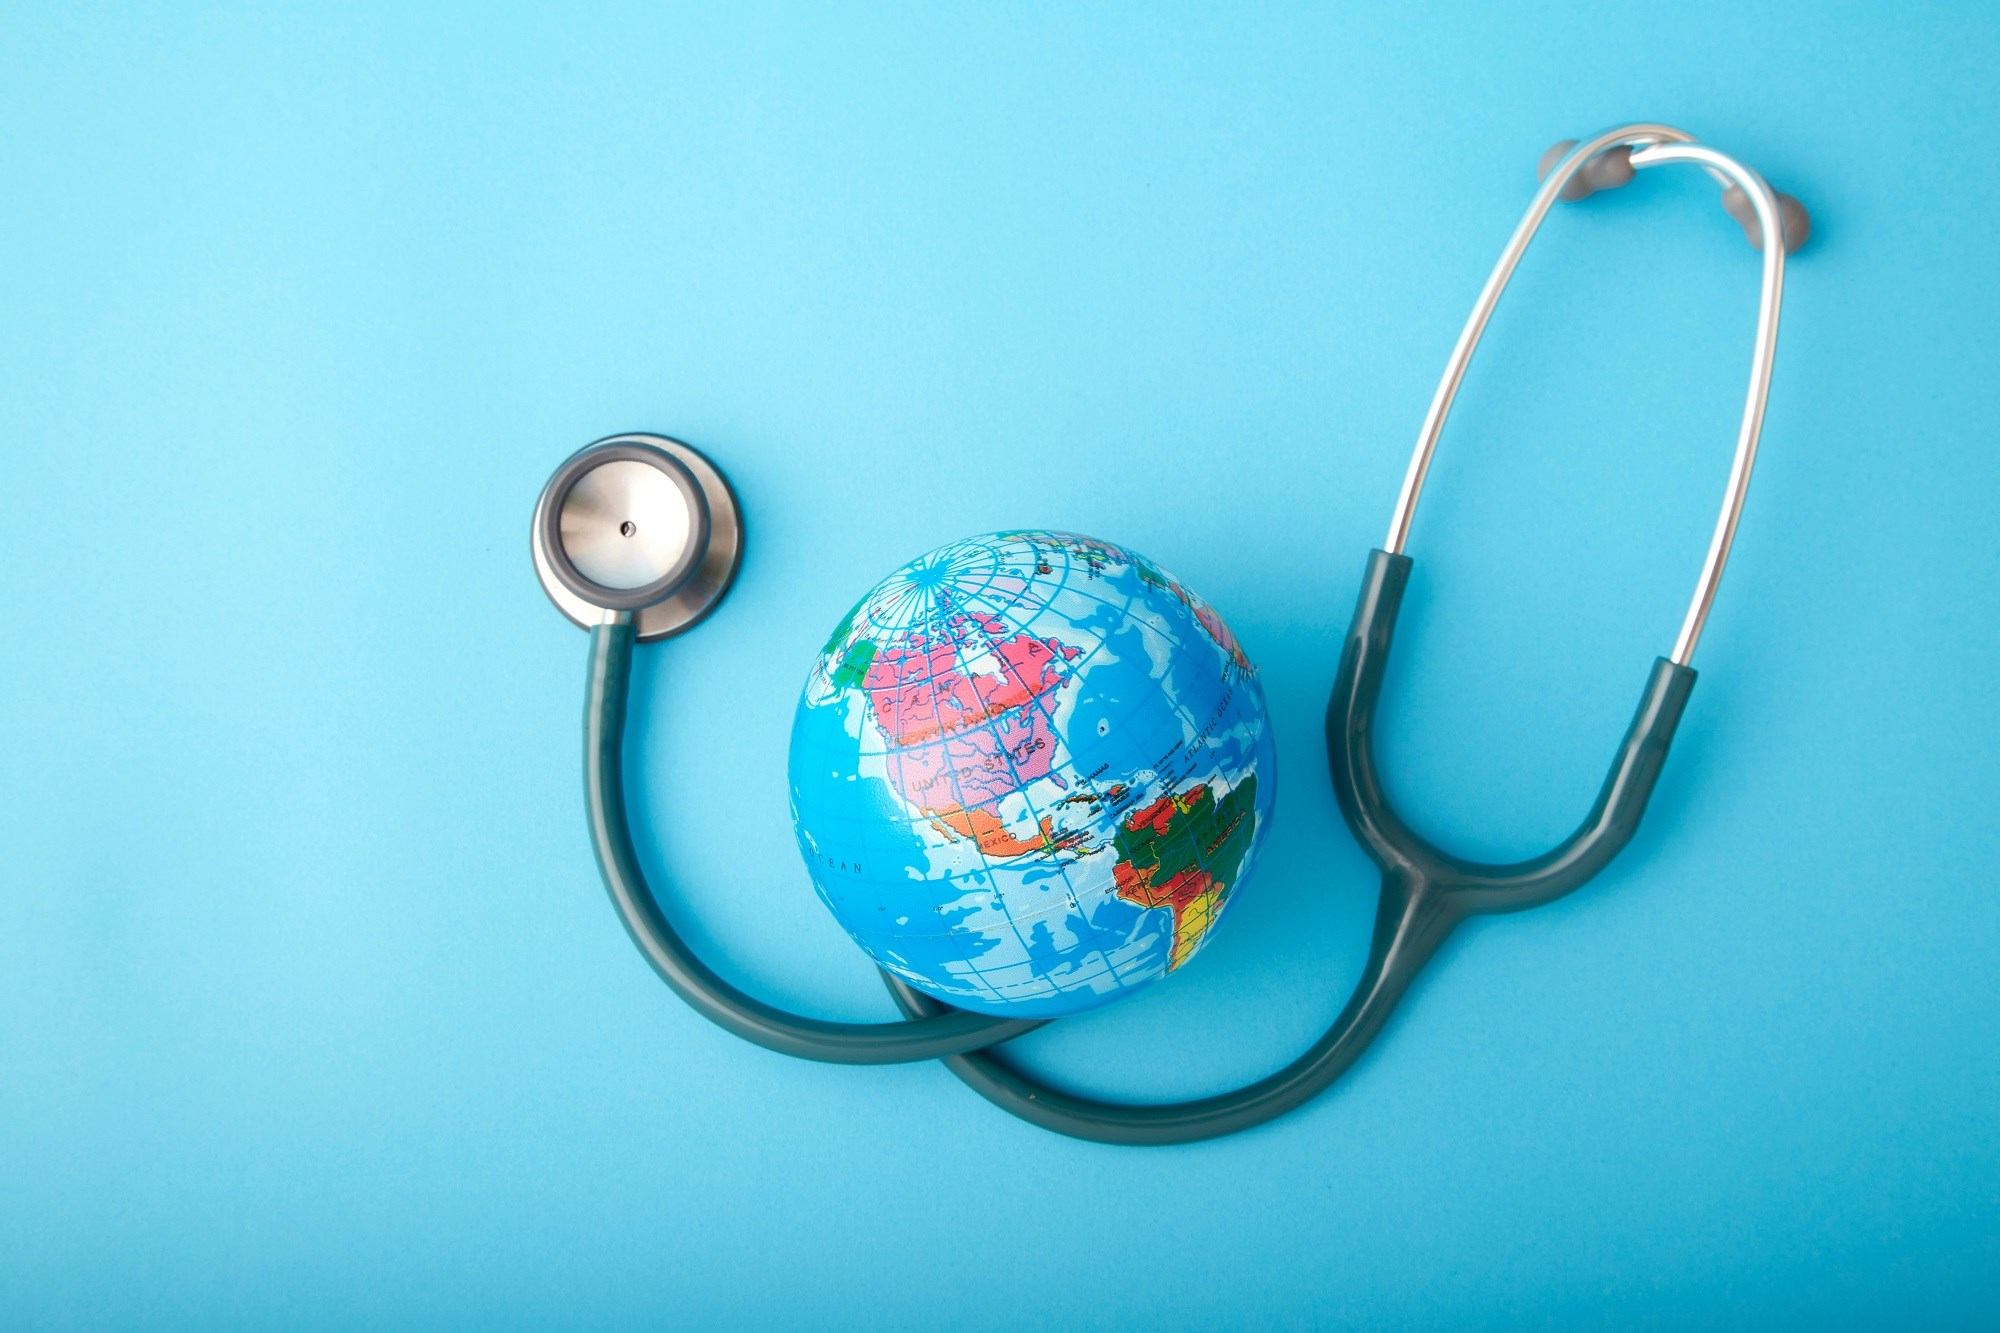 World Health Organization: Five-Year Plan to Address 10 Biggest Global Health Threats